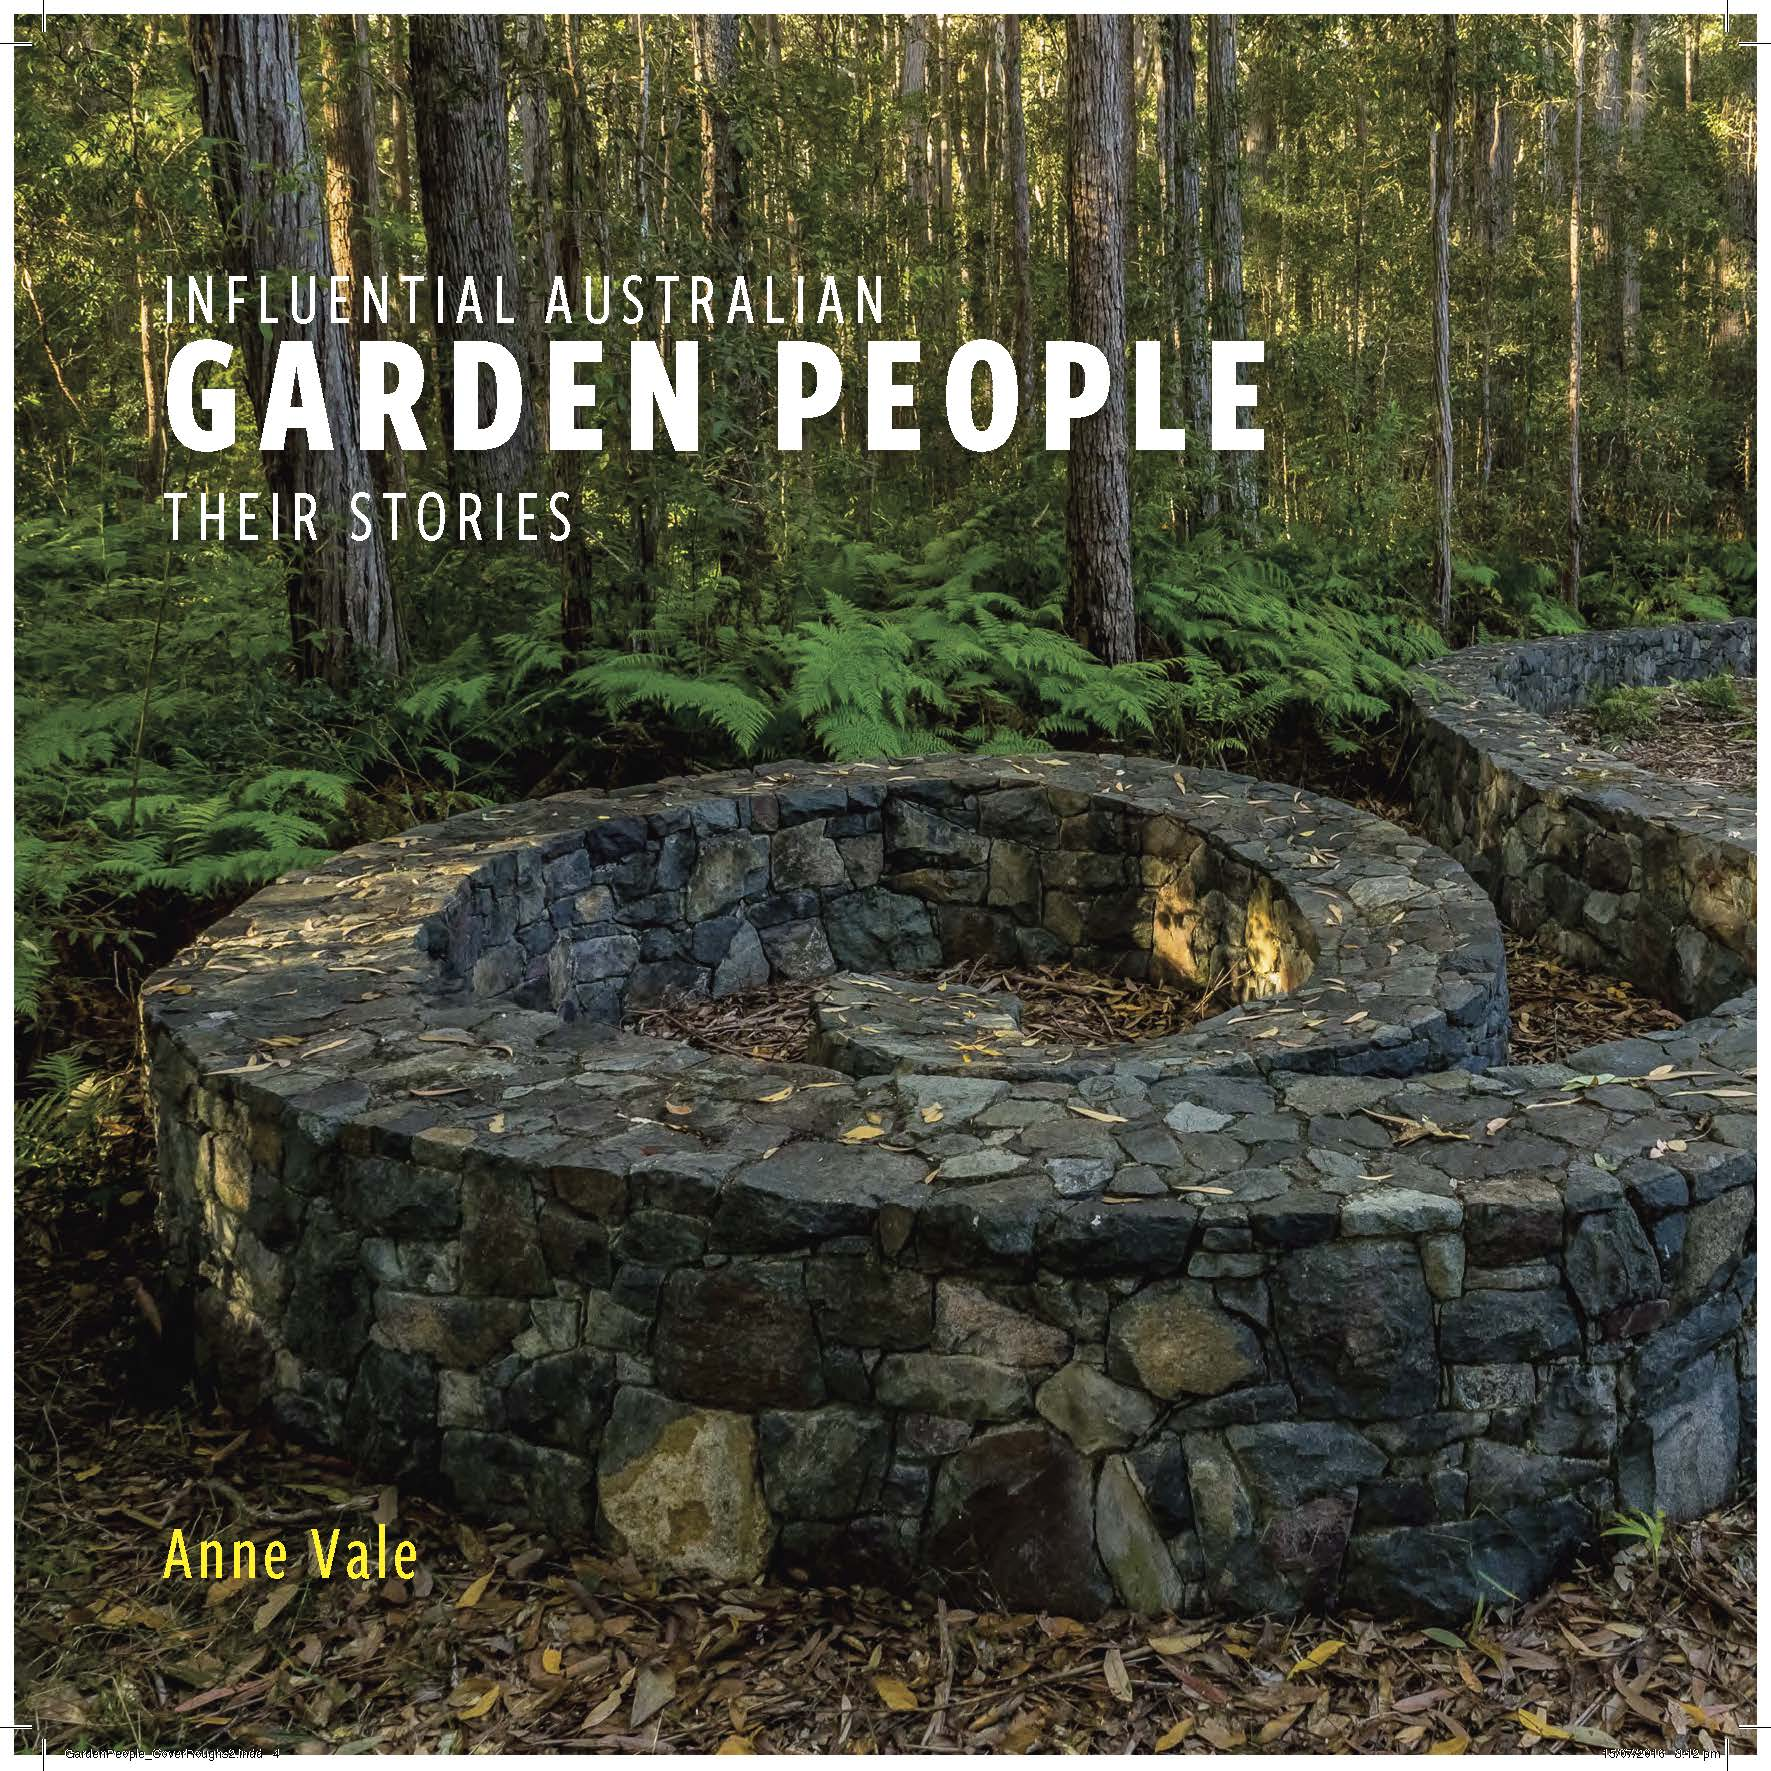 Publications anne vale garden history consultancy click on the link to hear anne discussing influential australian garden people with michael williams on blueprint for living radio national october 13th malvernweather Choice Image